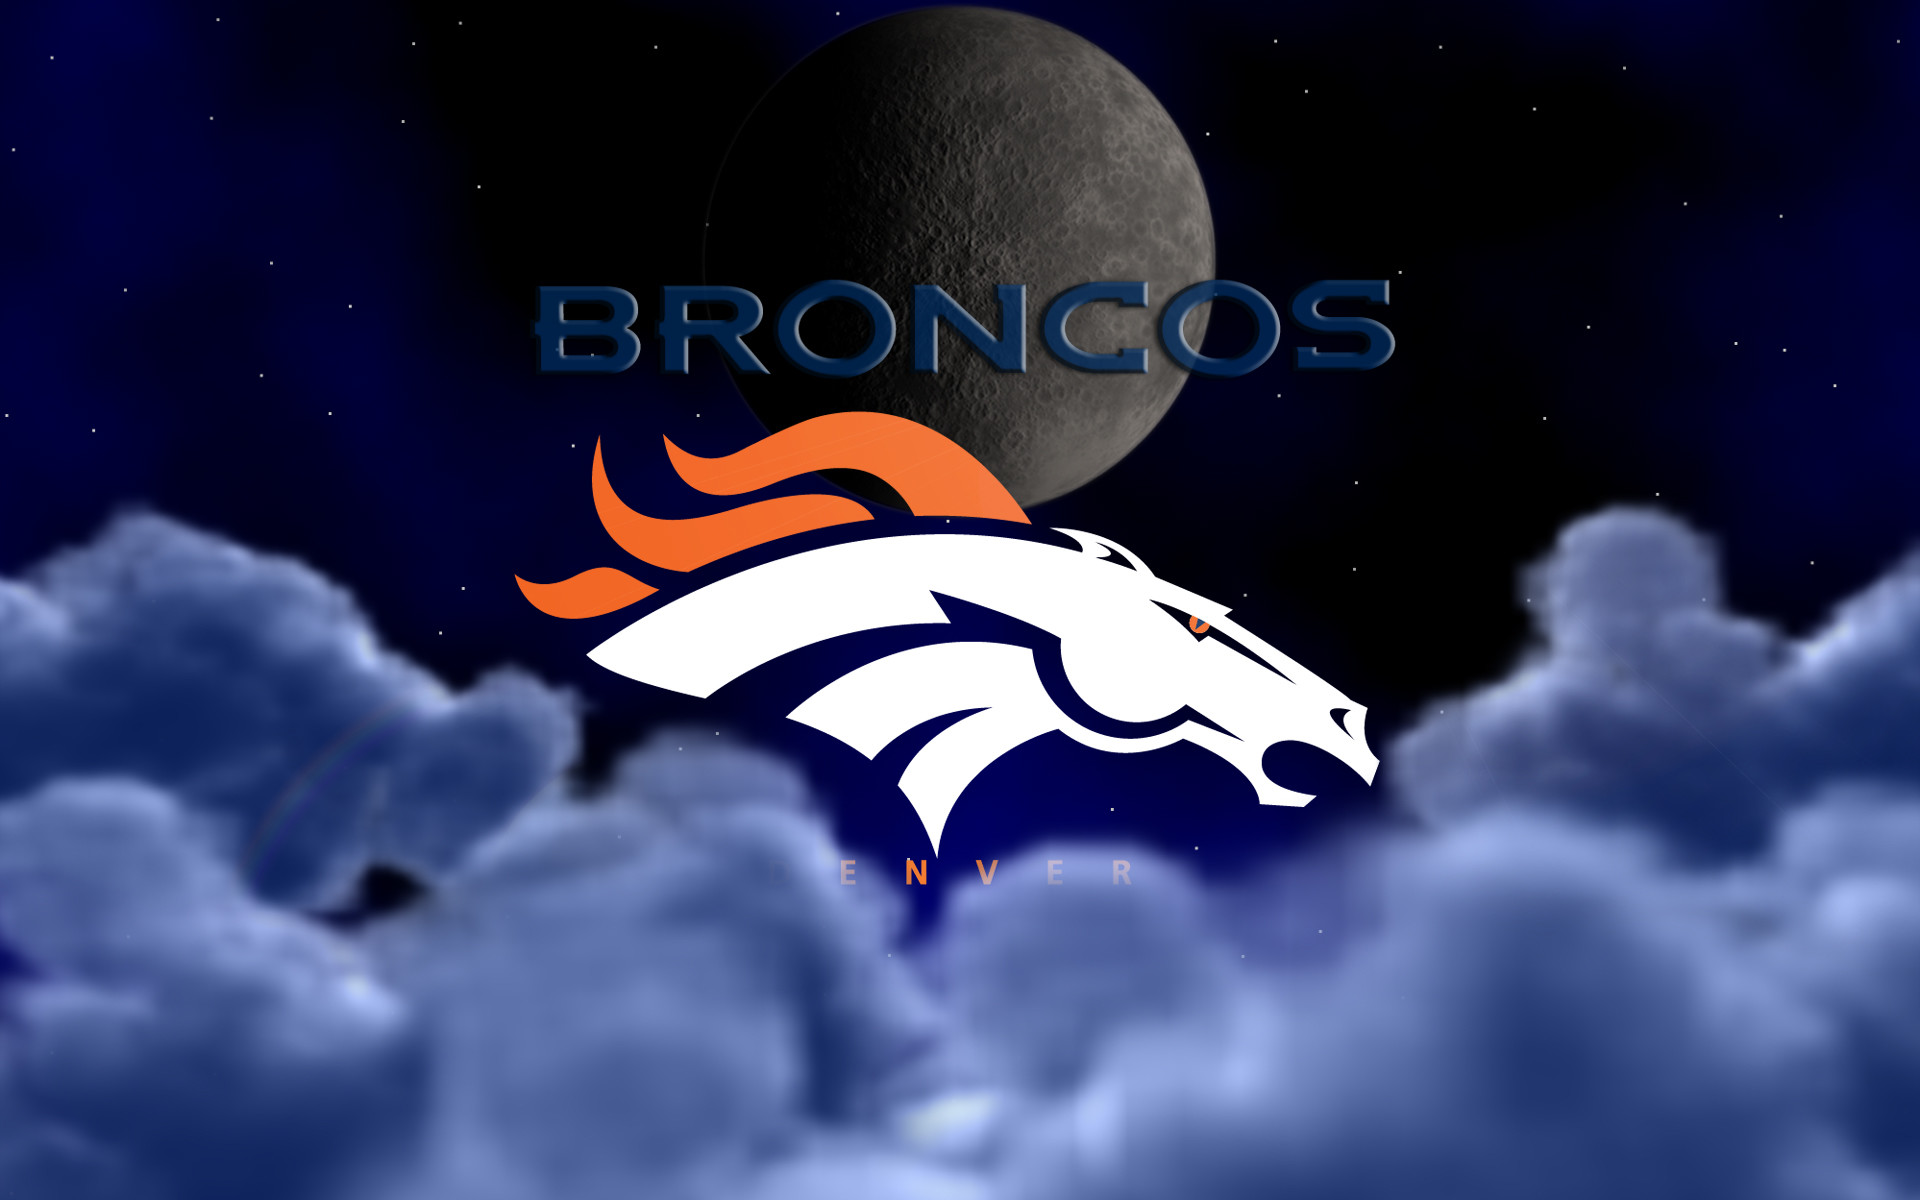 Denver-Broncos-Above-The-Clouds-Wallpaper-1920-x-